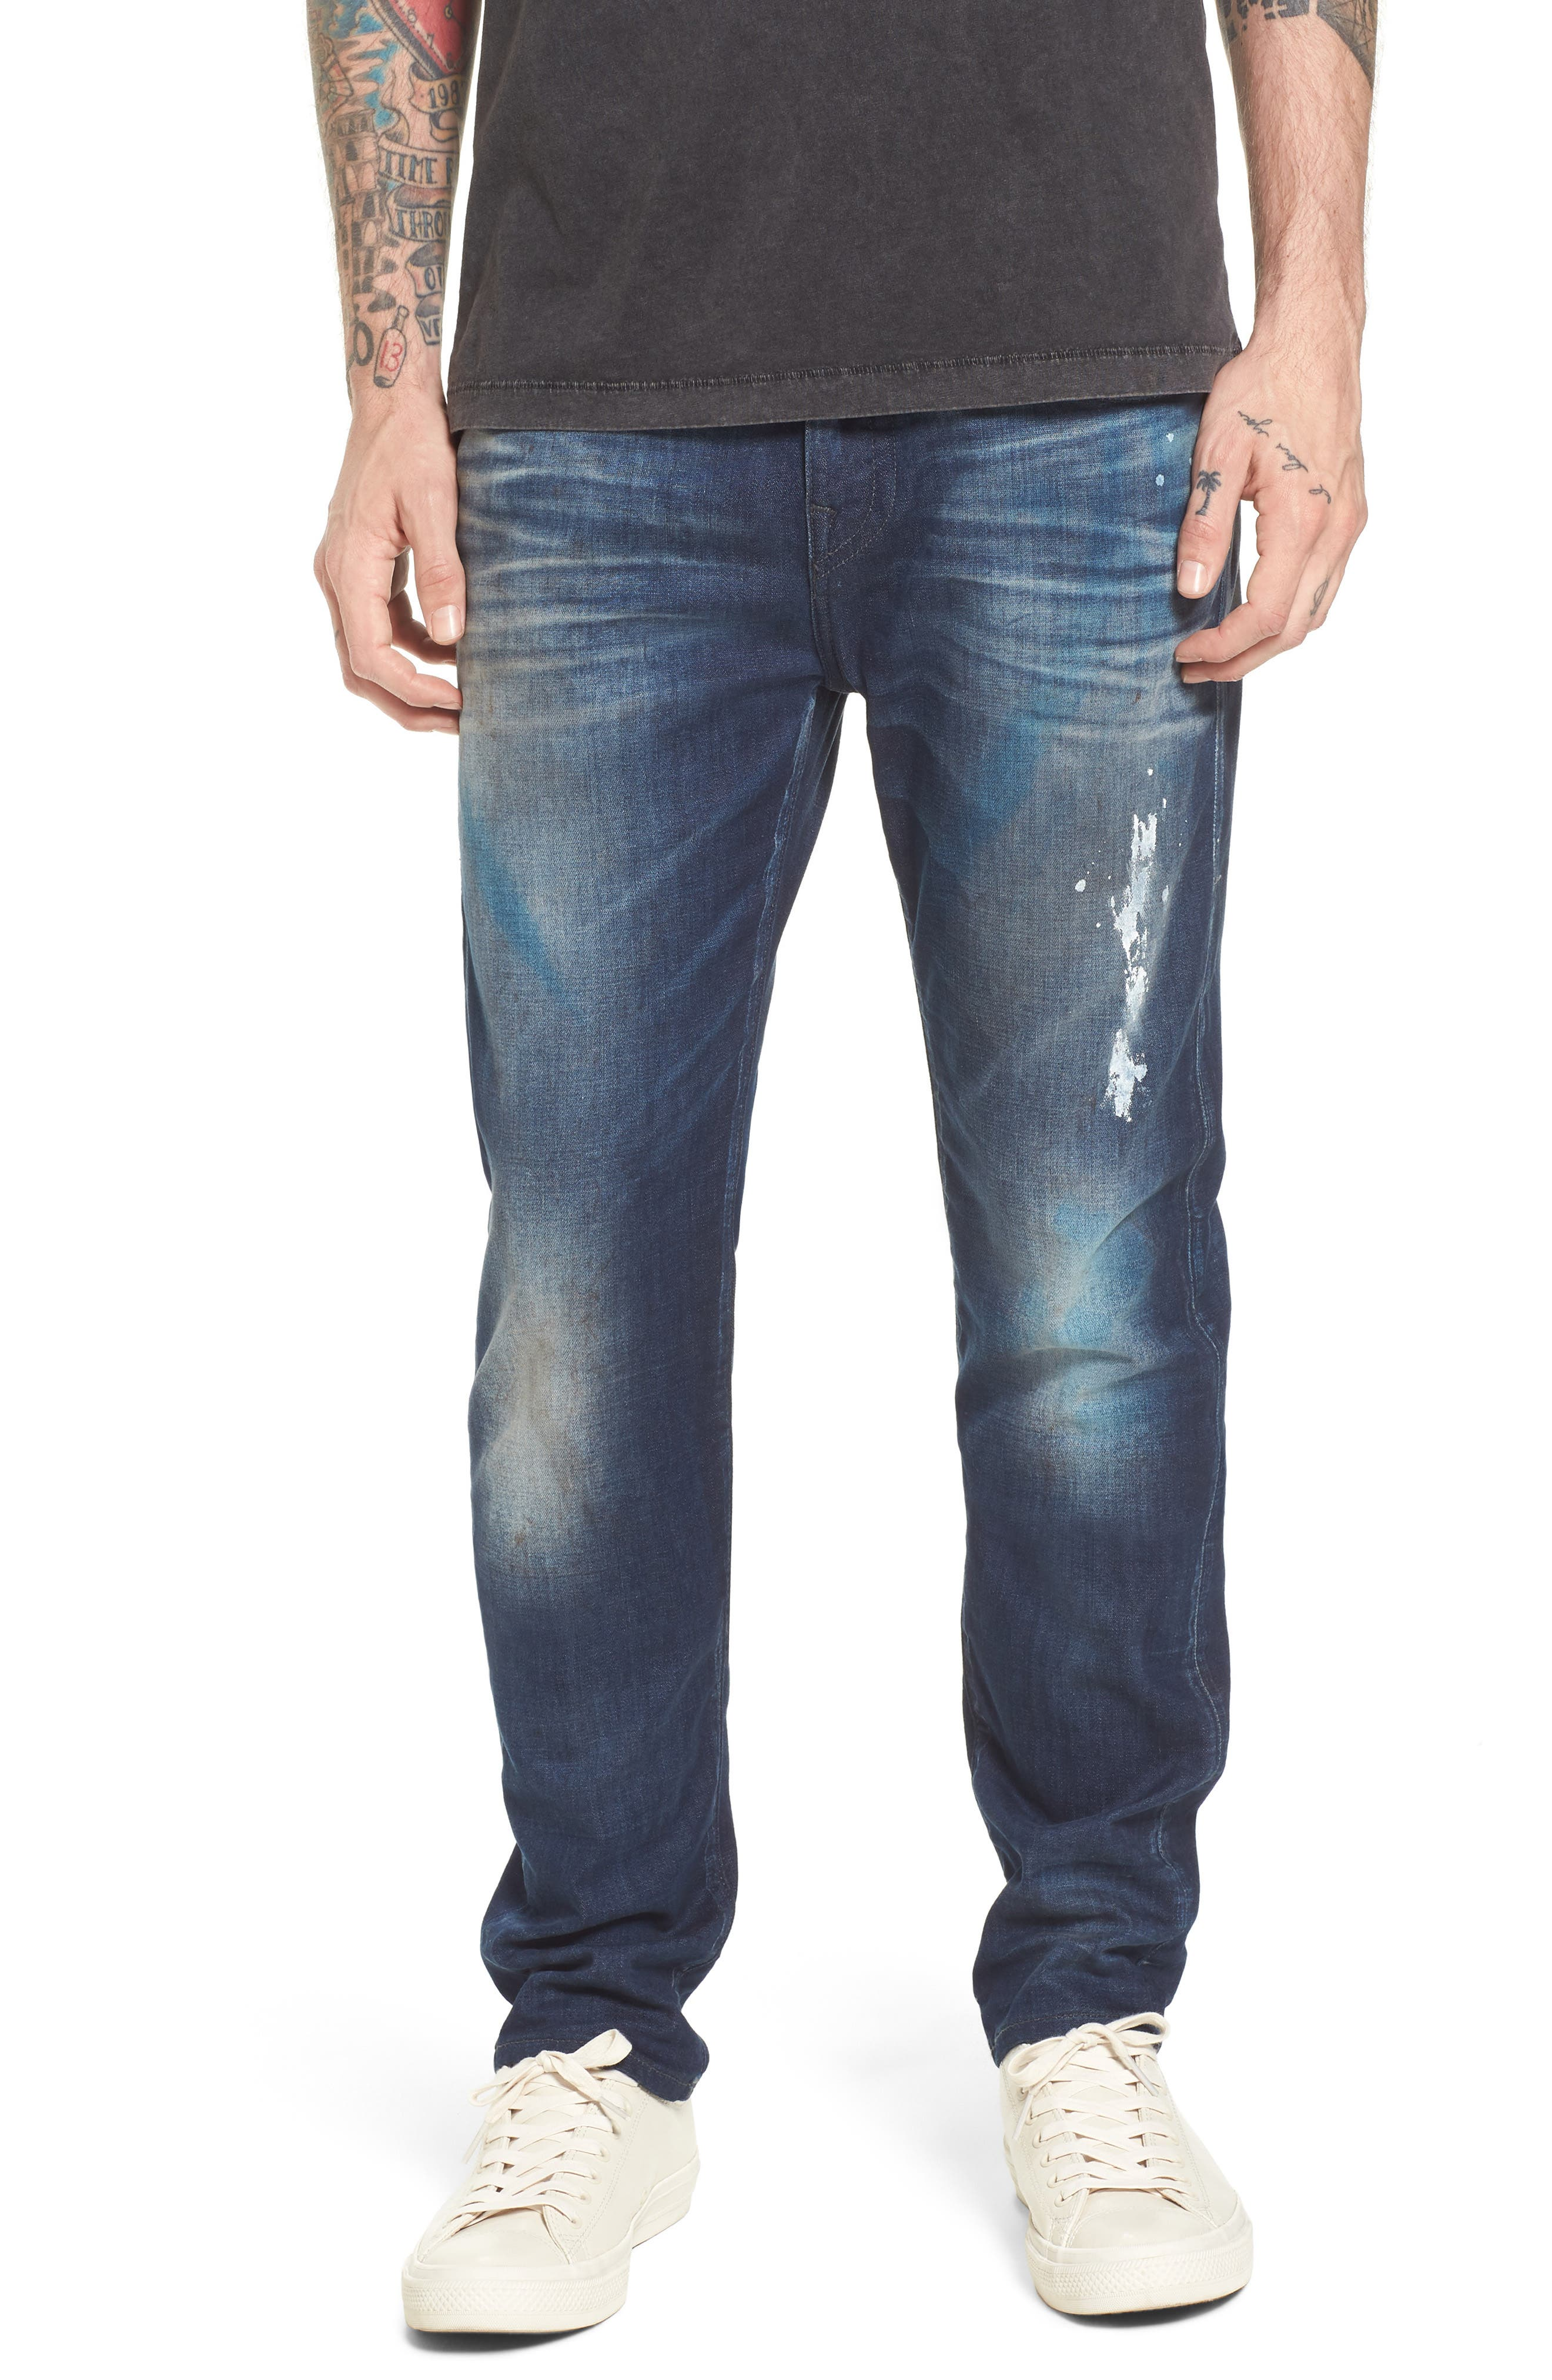 True Religion Brand Jeans Rocco Skinny Fit Jeans (Loft Edge)